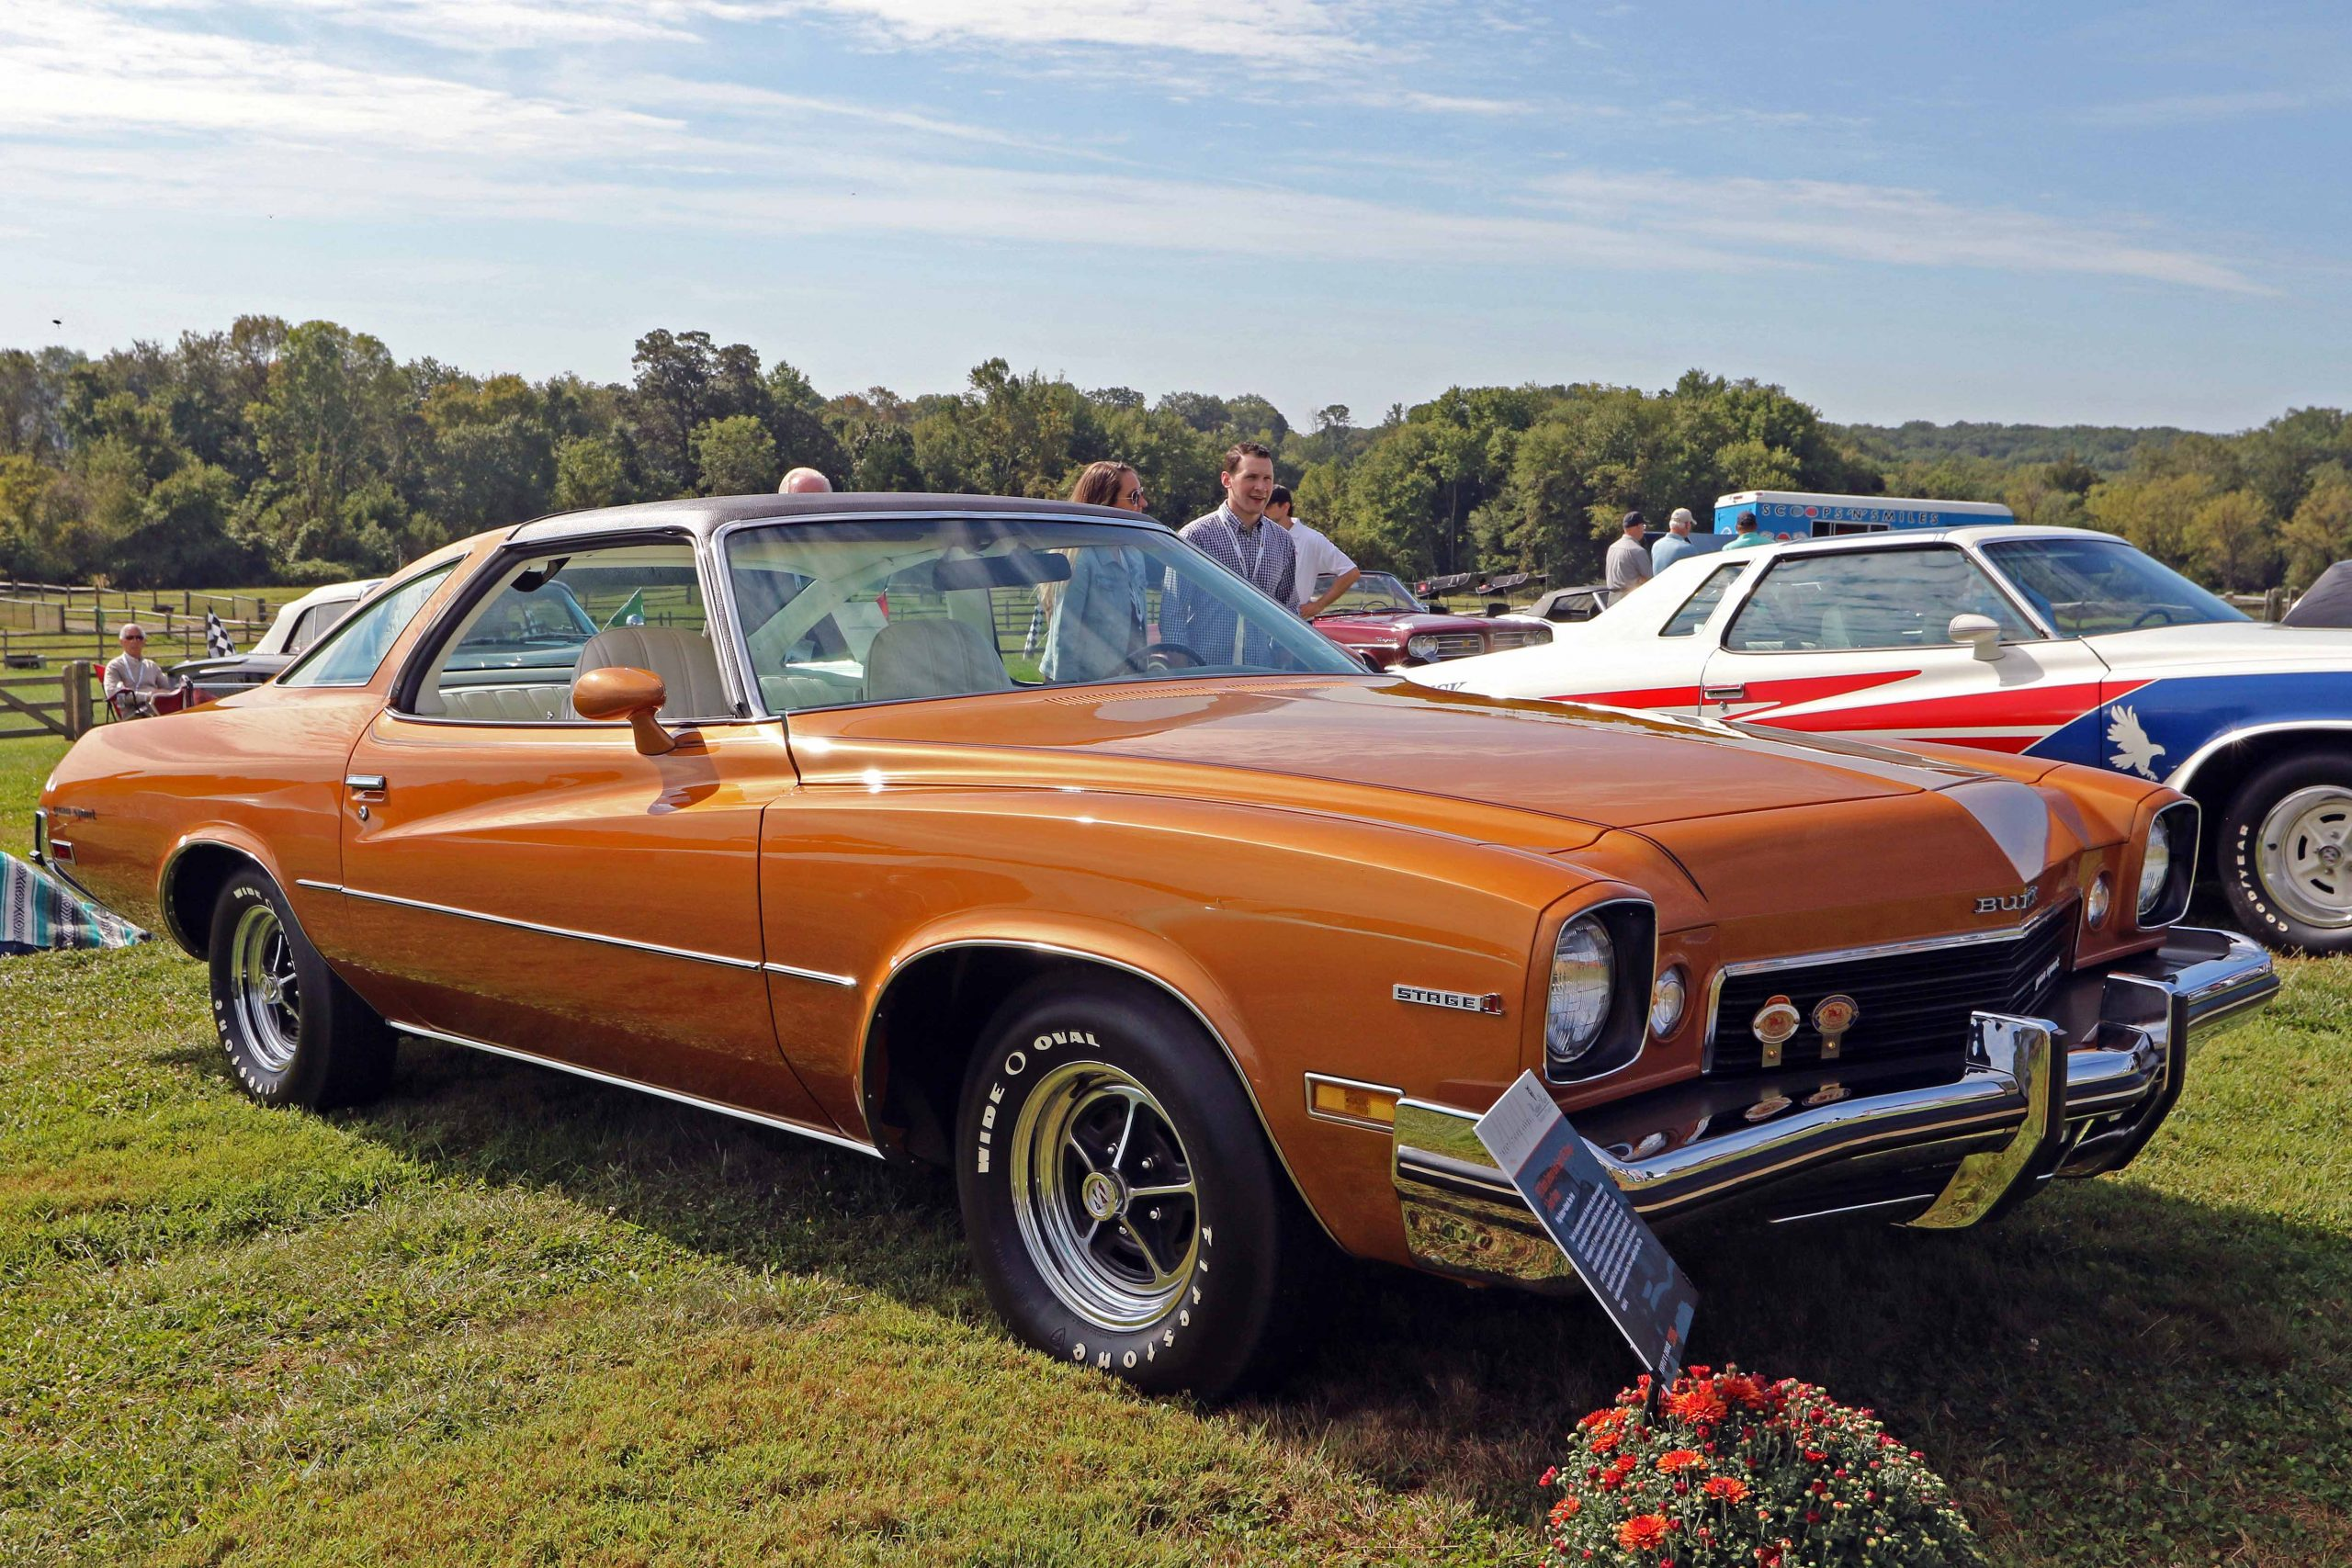 1973 buick gs stage 1 concours front three quarter